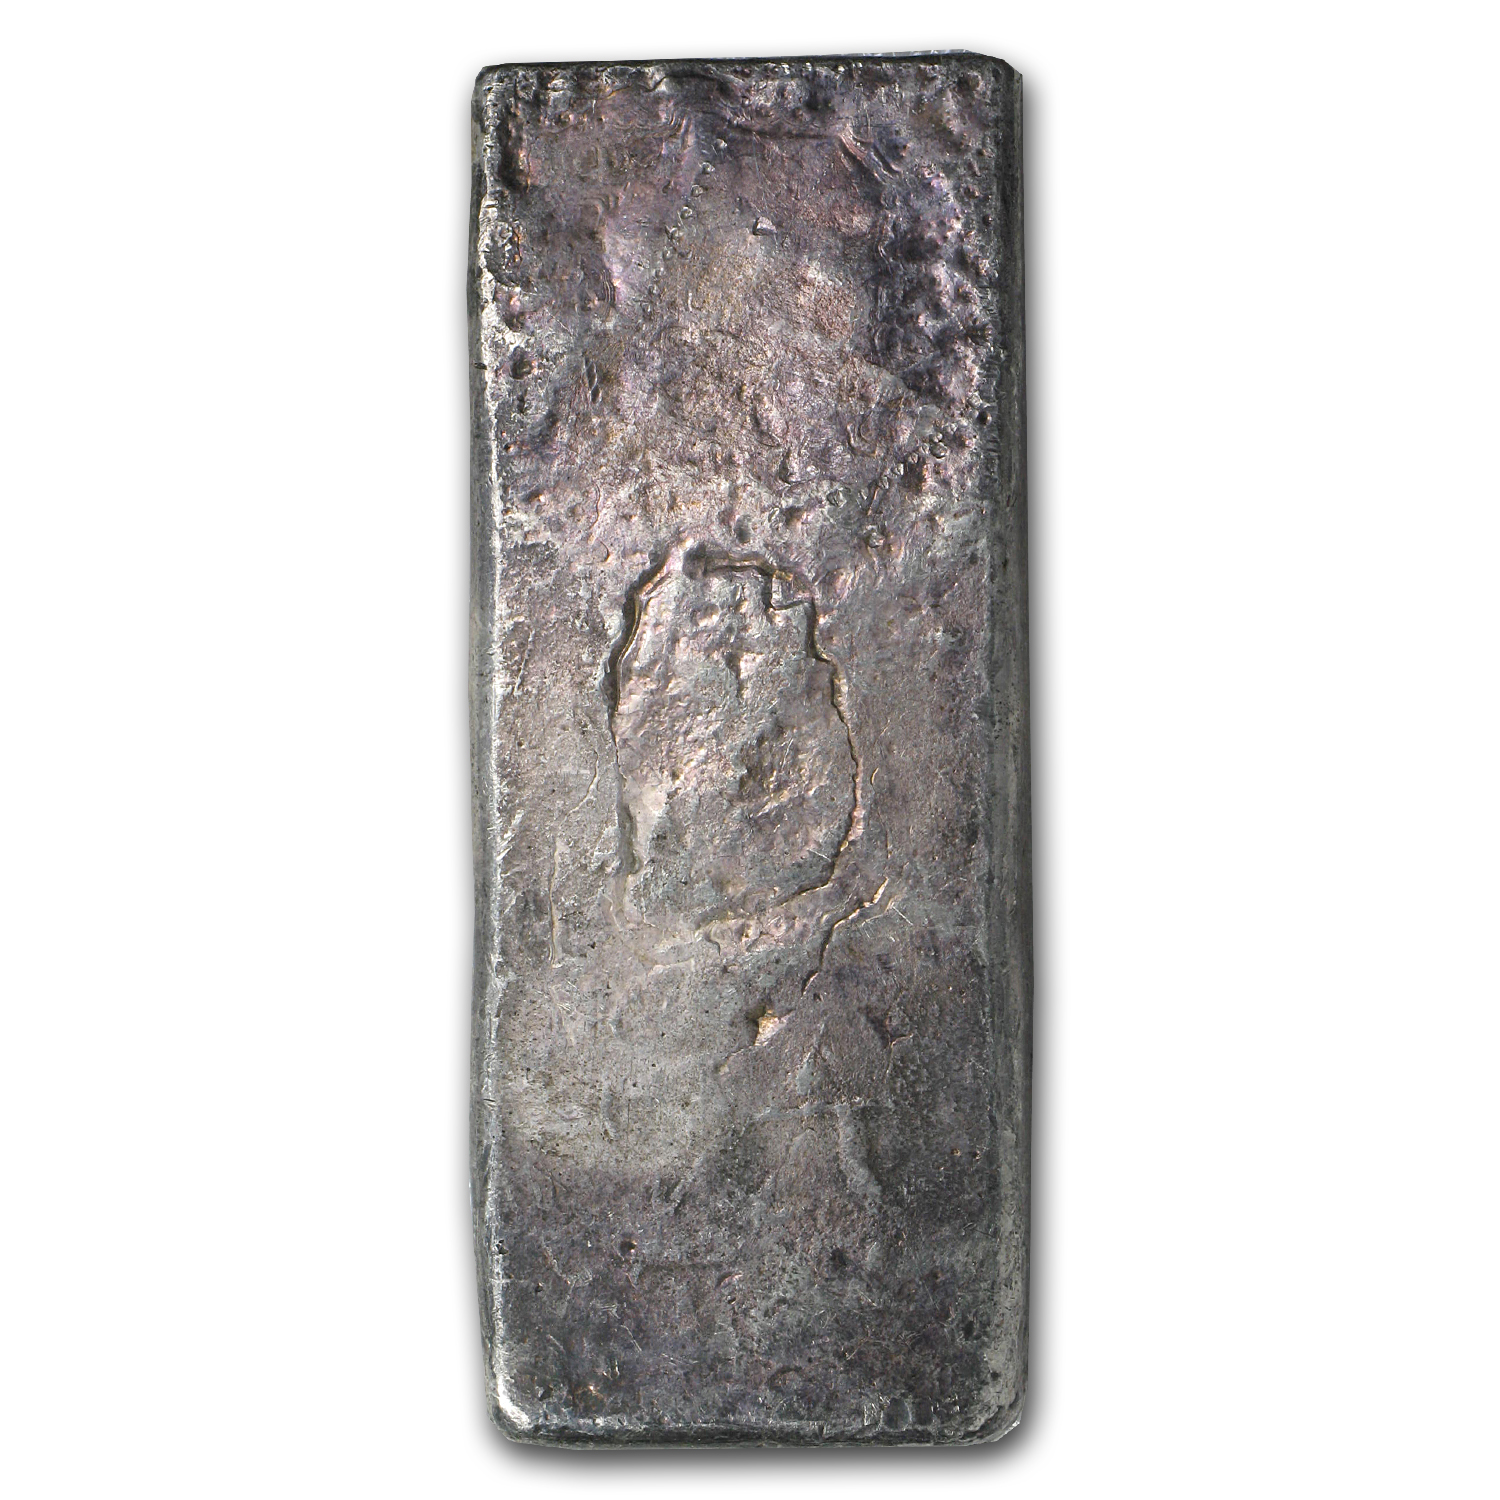 6.01 oz Silver Bar - Hong Kong Cheung Shun Gold Shop